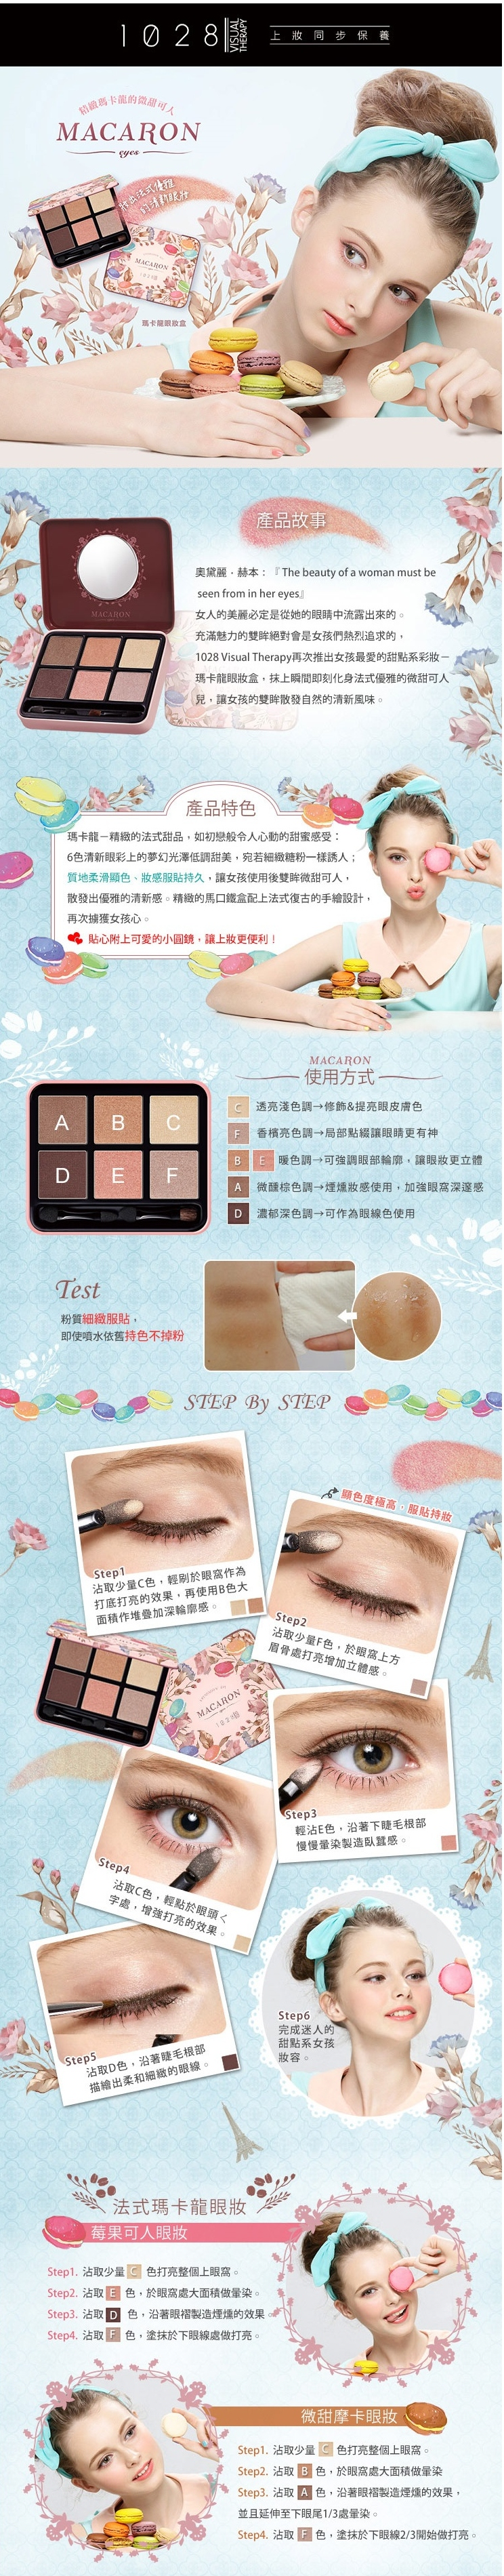 1028-visual-therapy-macaron-eyeshadow-kit-2.1gx6-1.jpg